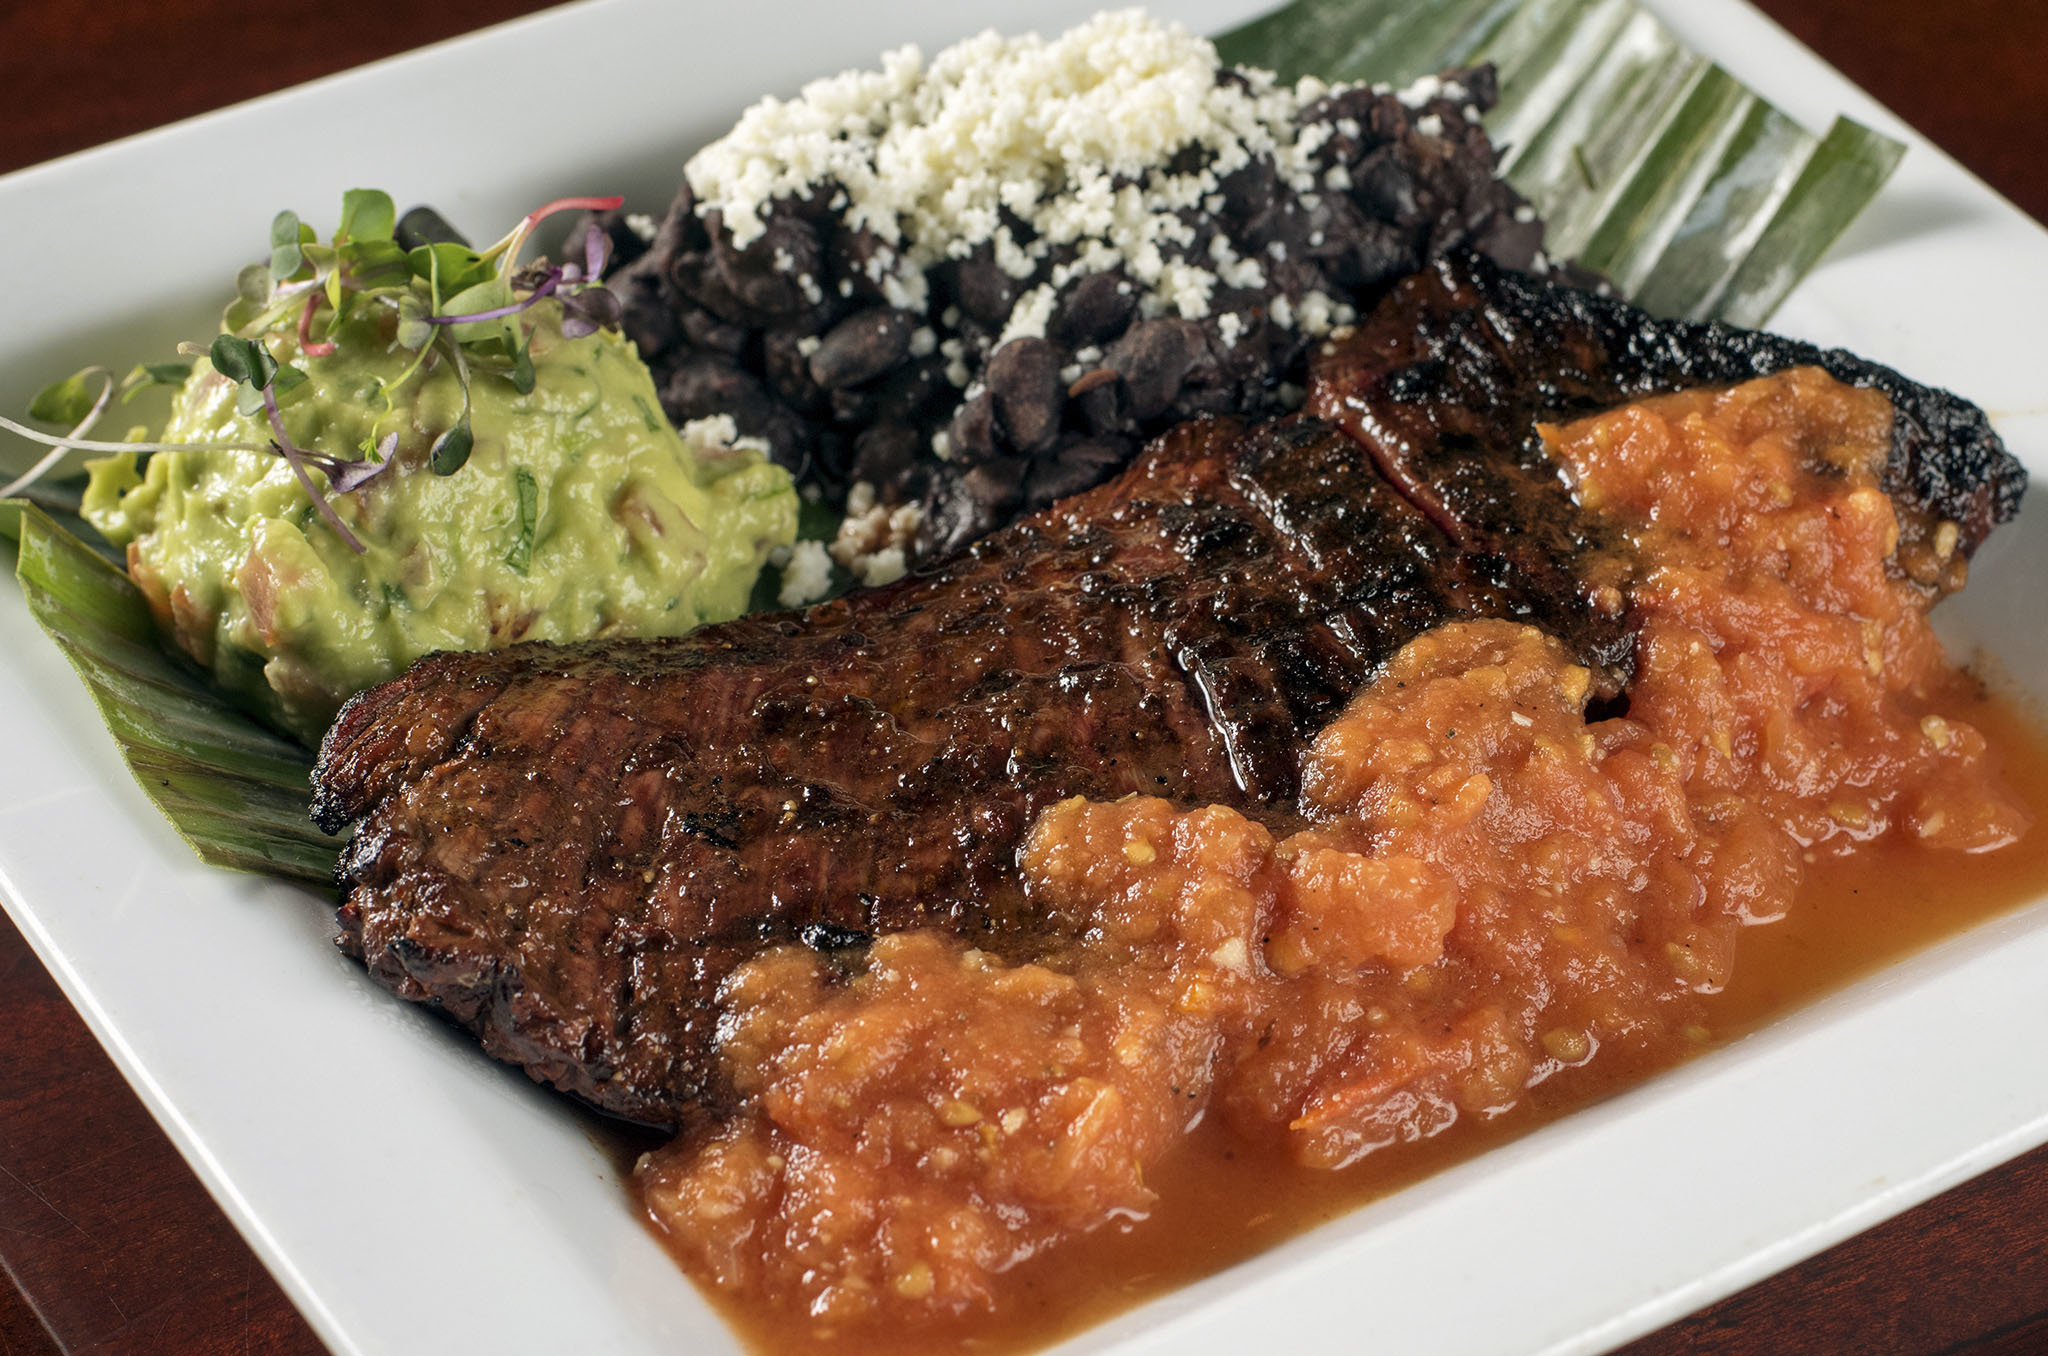 Carne asada at Ixcateco Grill